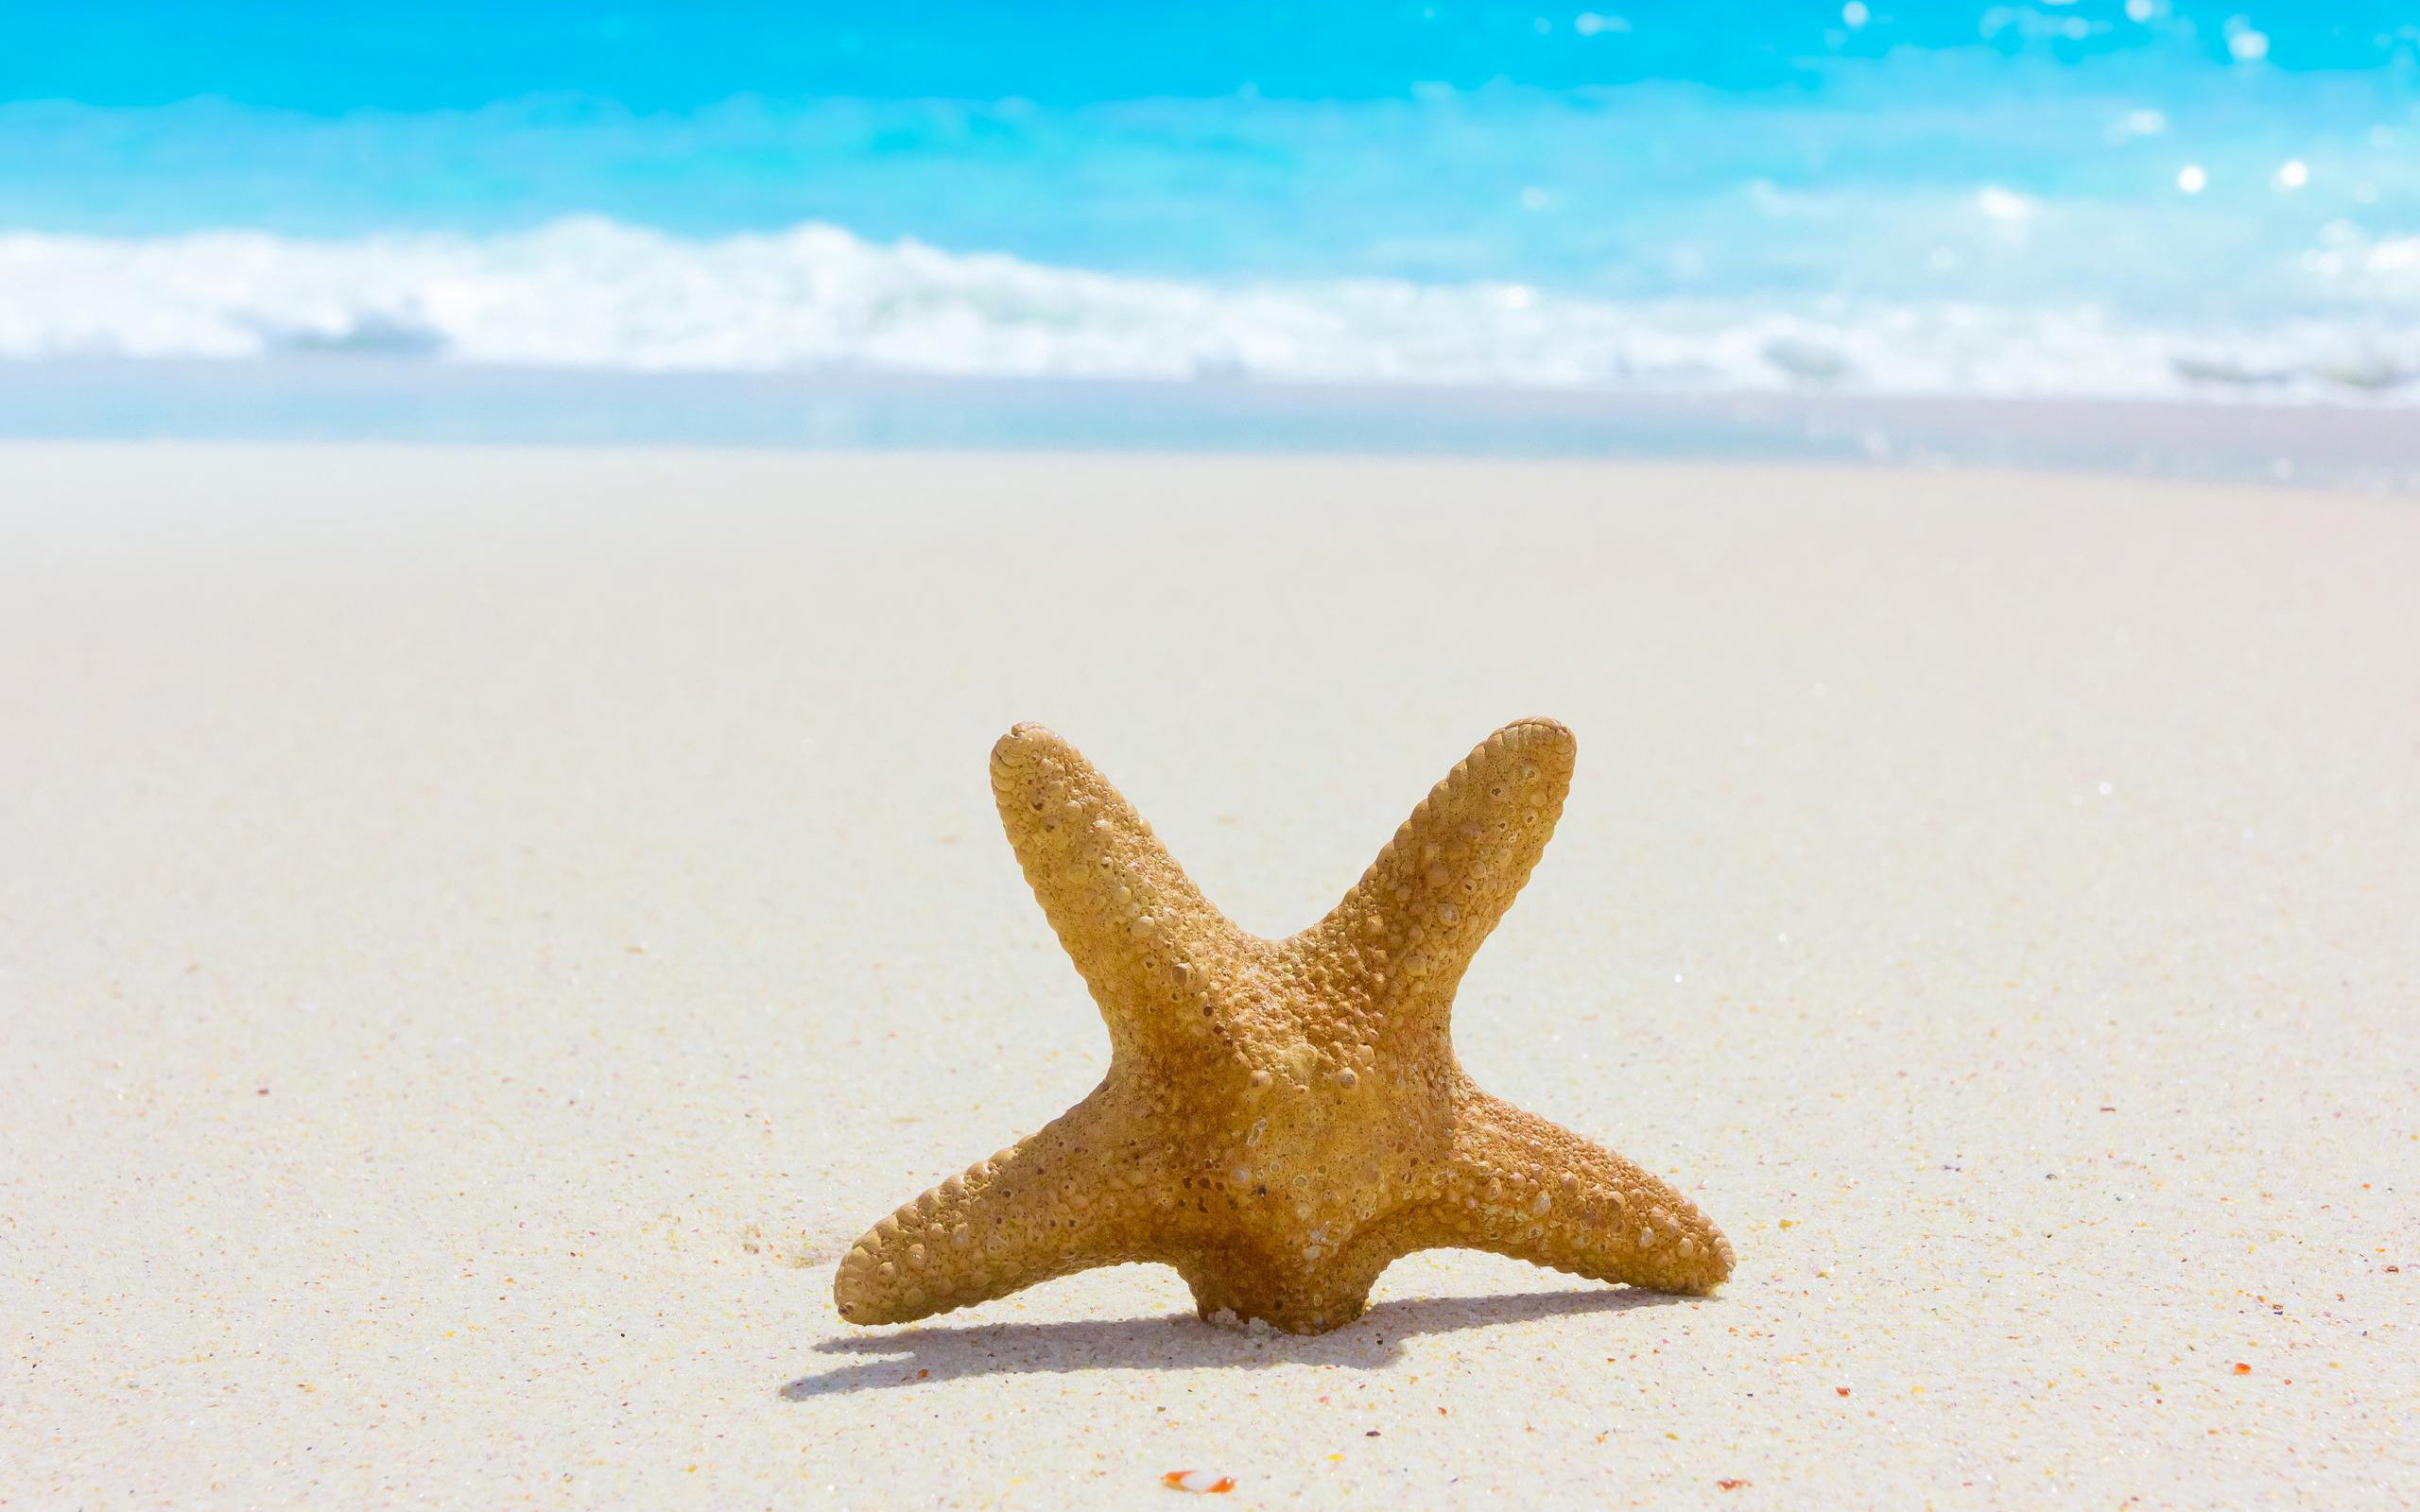 Download hd 2560x1600 Starfish PC background ID:29718 for free